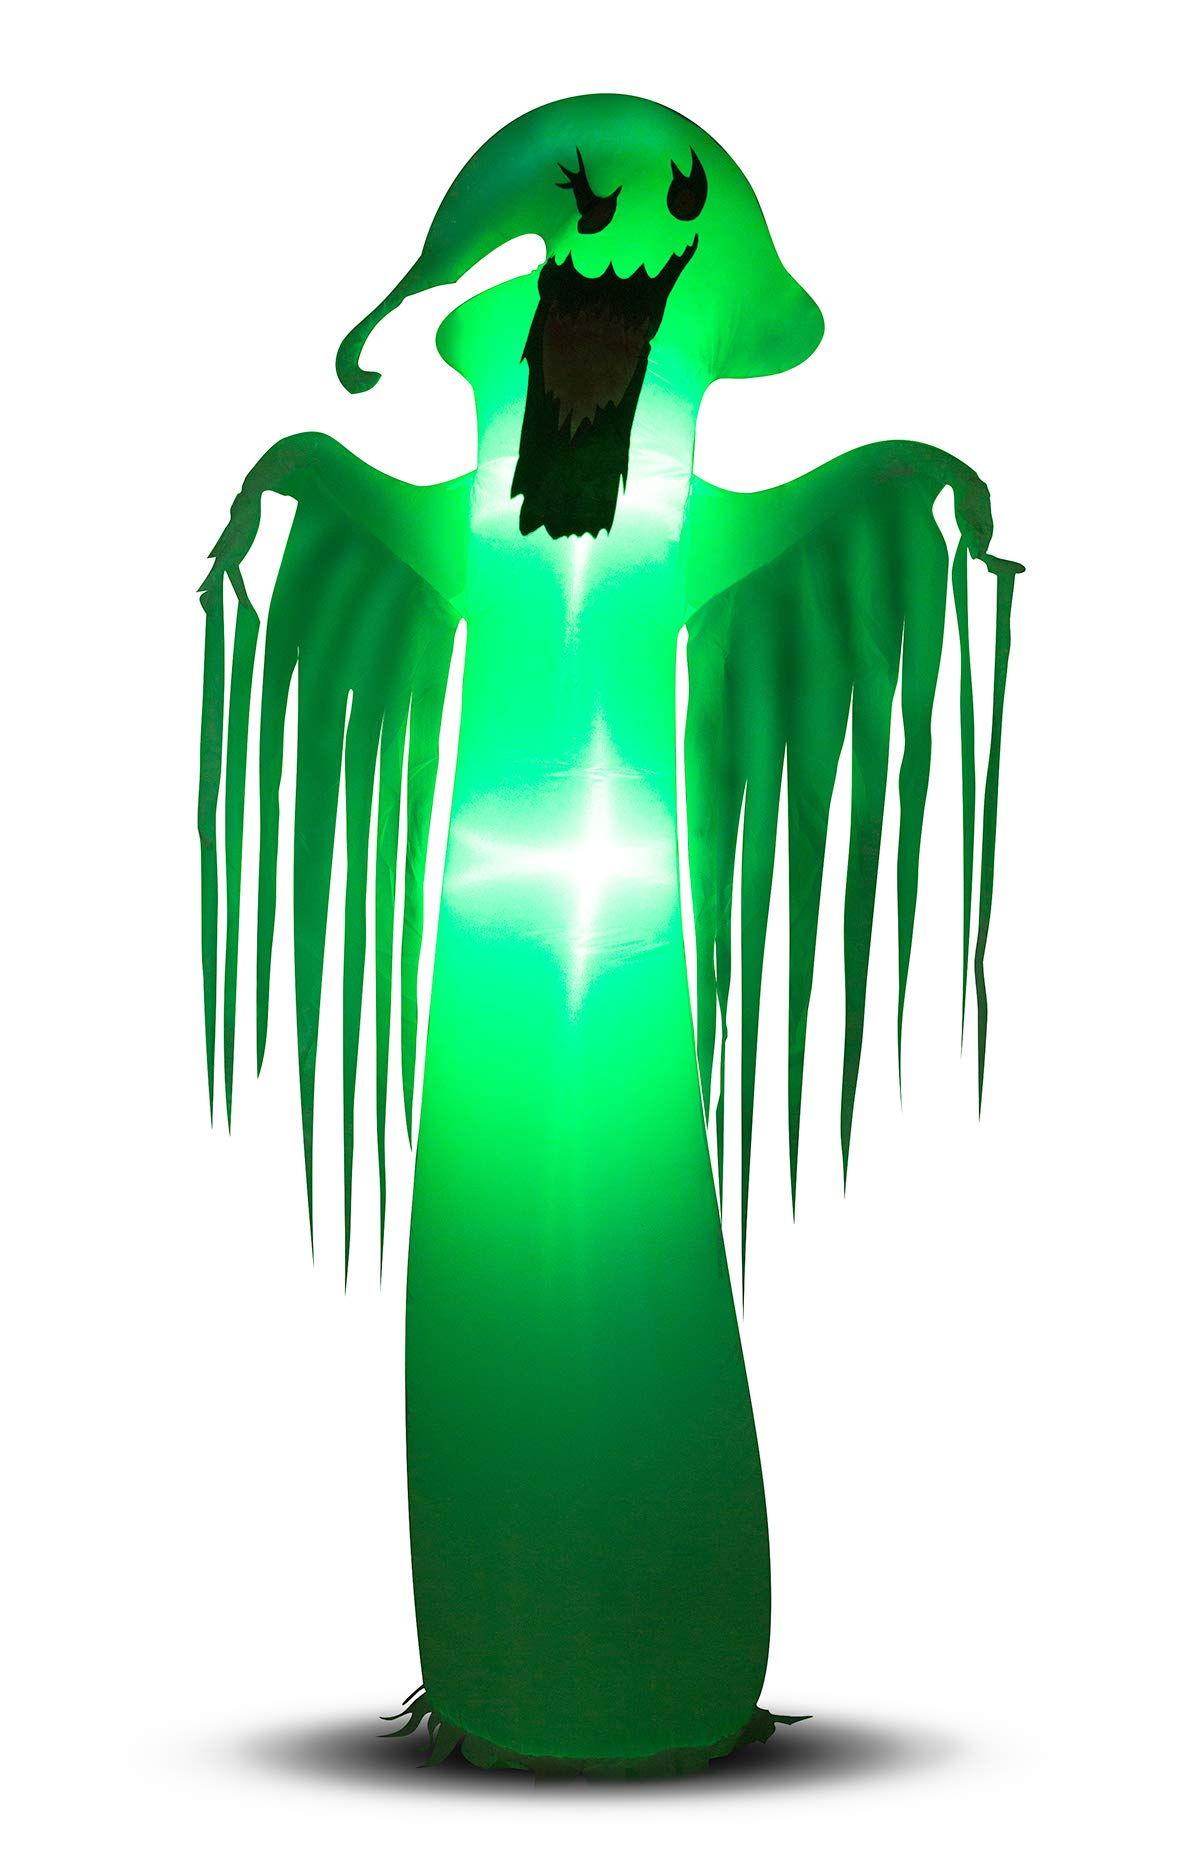 DAMGOO 8 Ft Inflatable Halloween Spooky Ghost Decoration Ghost with Green Light Decorations Inflatables for Lawn Garden Home Indoors Outdoors Day Night